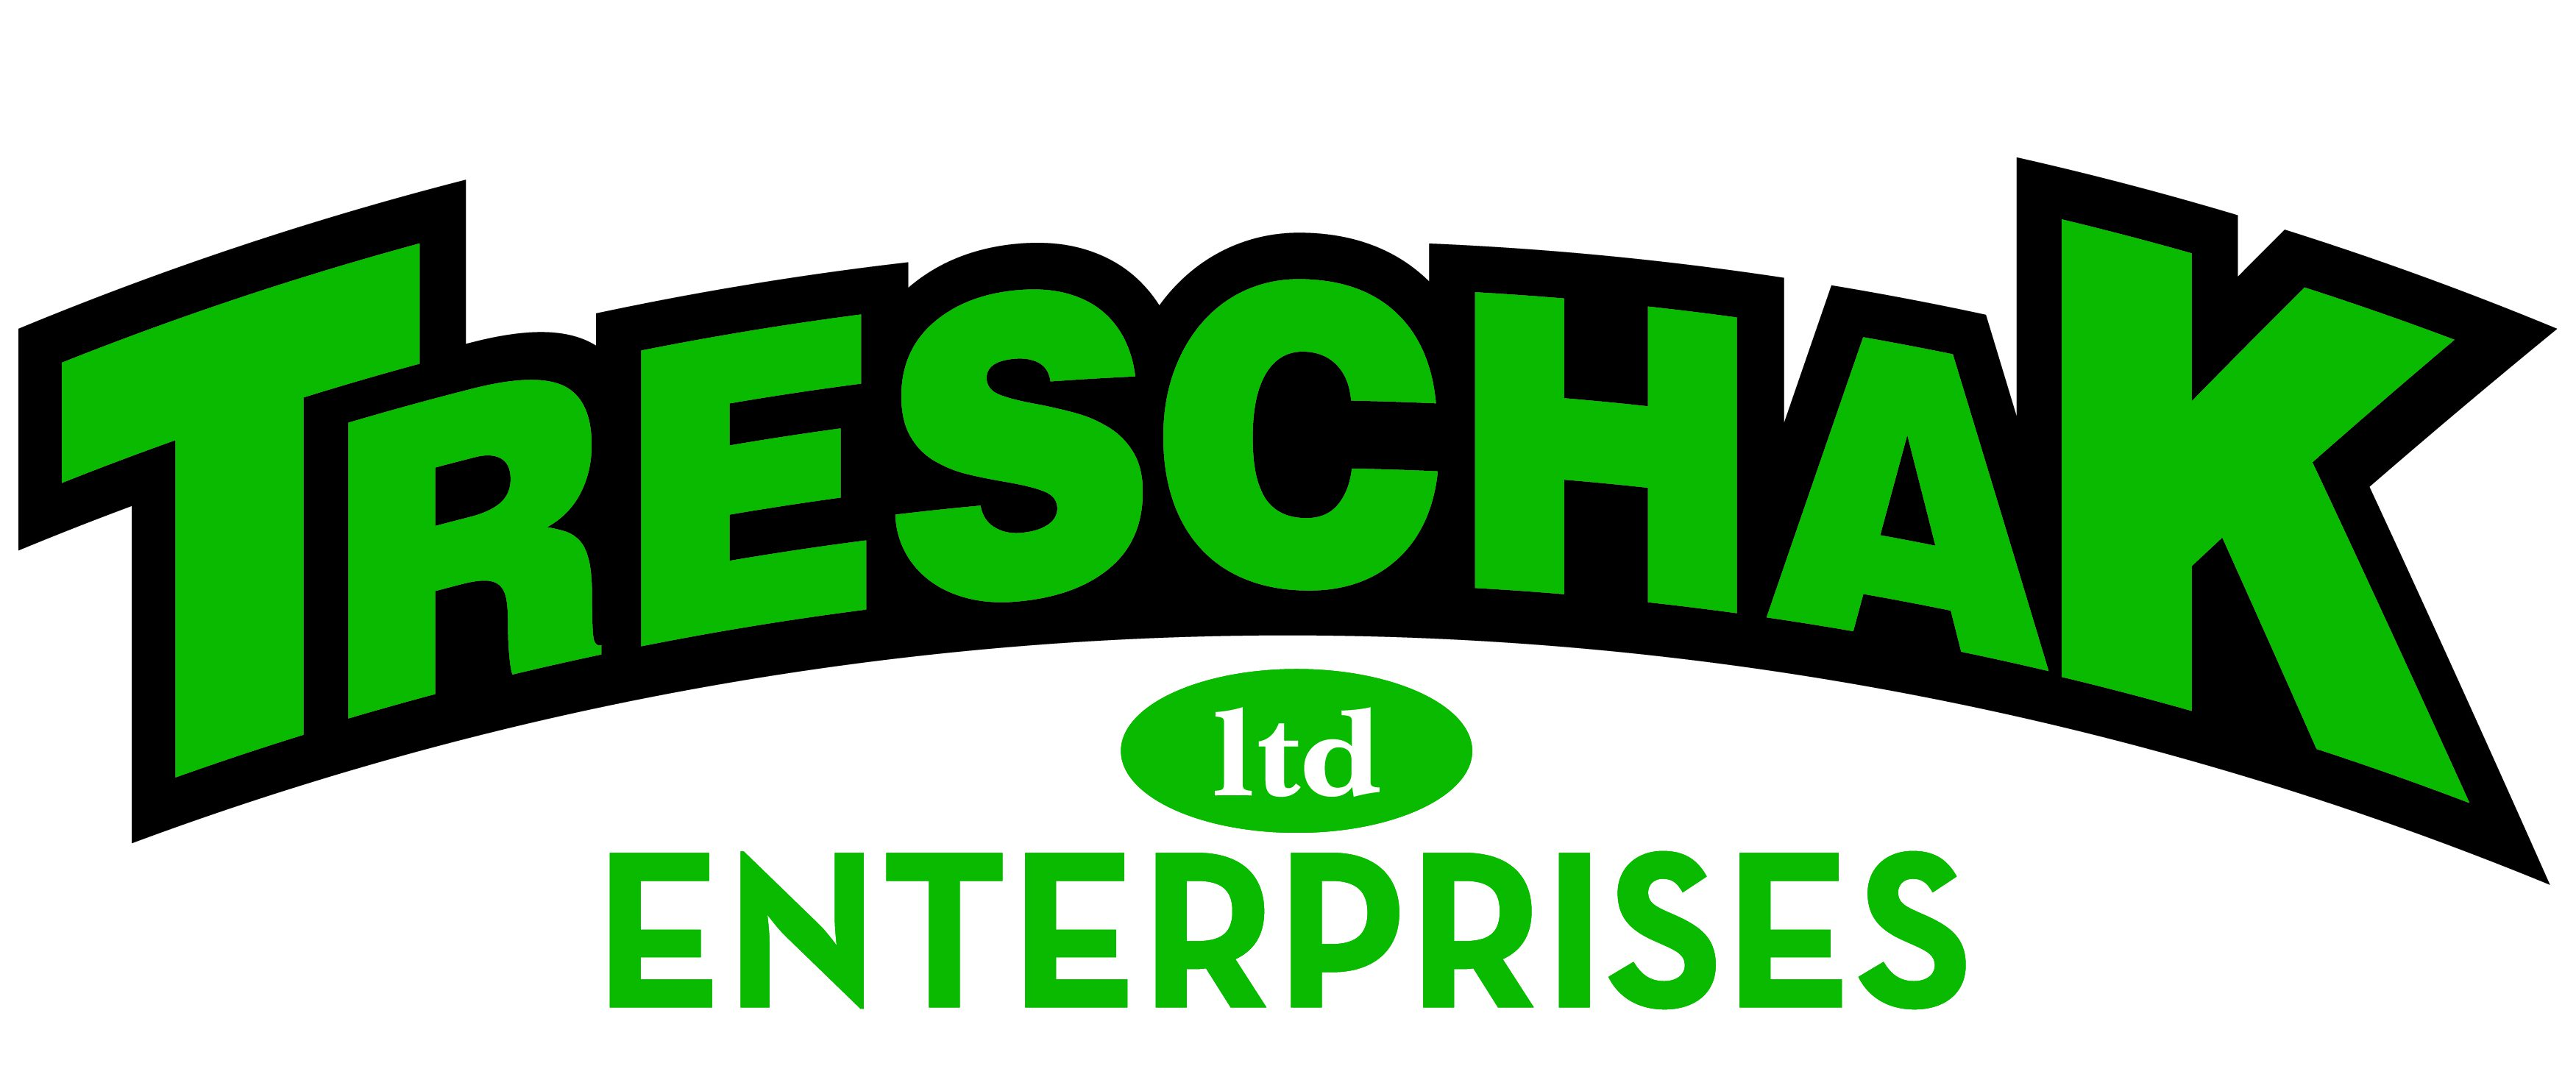 Treschak Enterprises